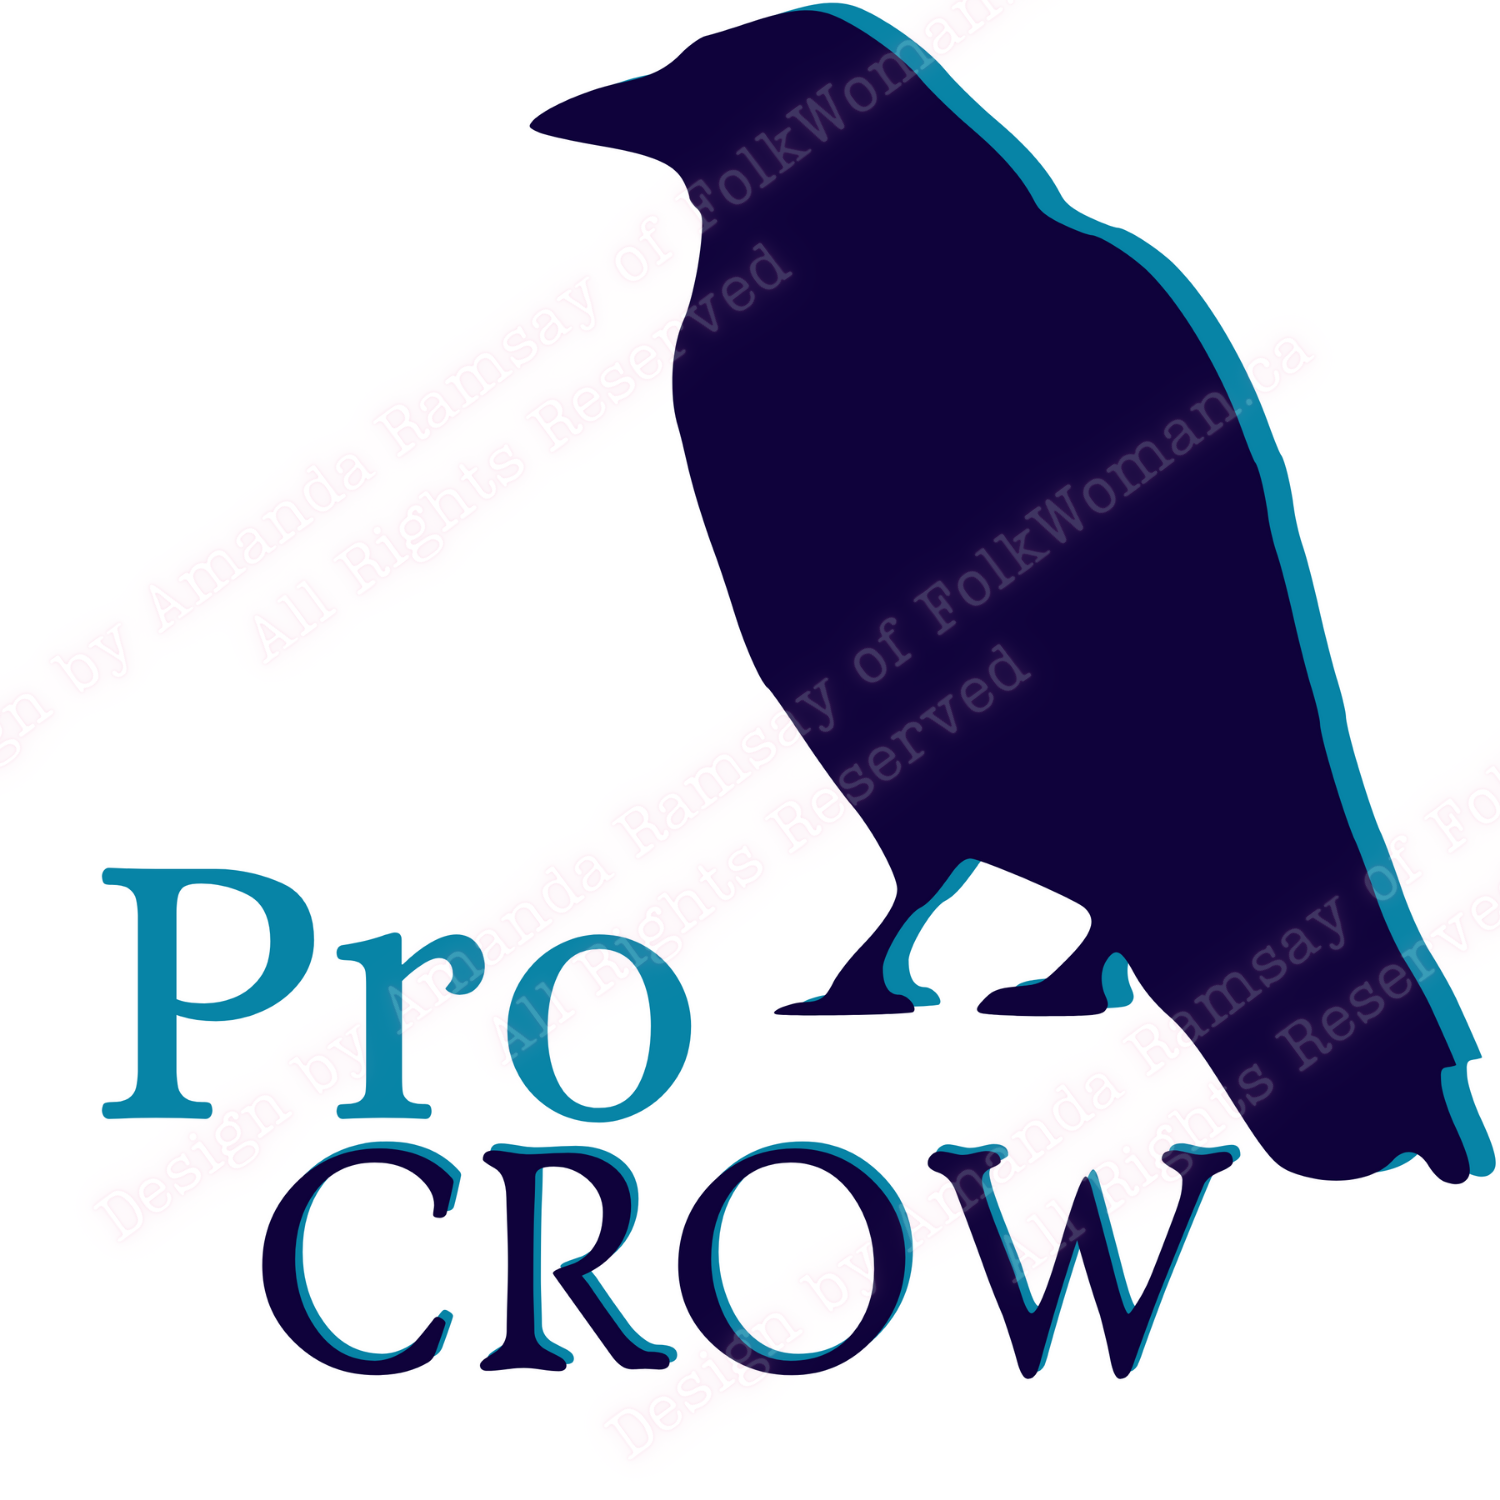 Pro Crow with an image of a Navy crow on a white background. Amanda's design for a t-shirt and jumbo sticker.